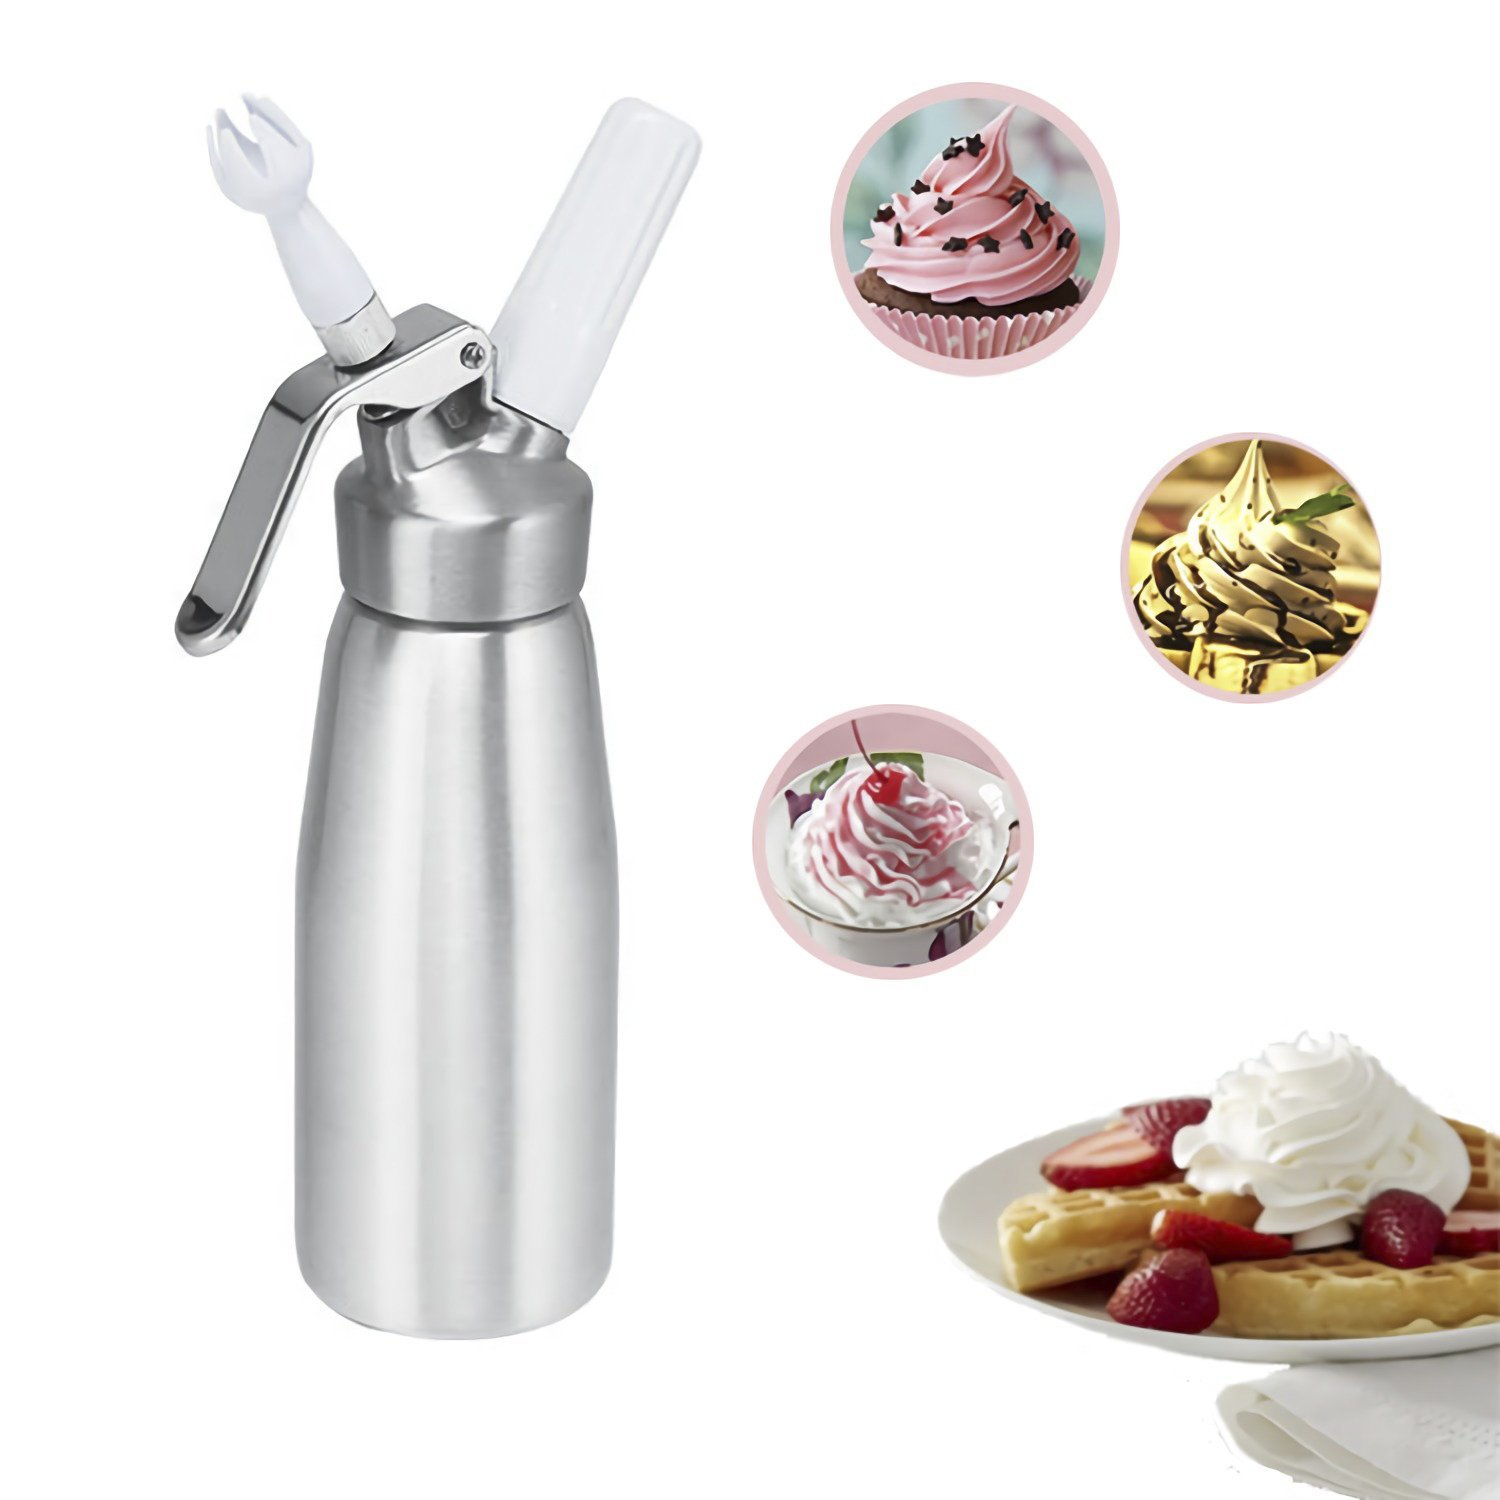 Professional Whipped Cream Dispenser Whip Culinary cream maker high strength aluminum alloy 0.5L with 3 Decorating tips and Cleaning Brush